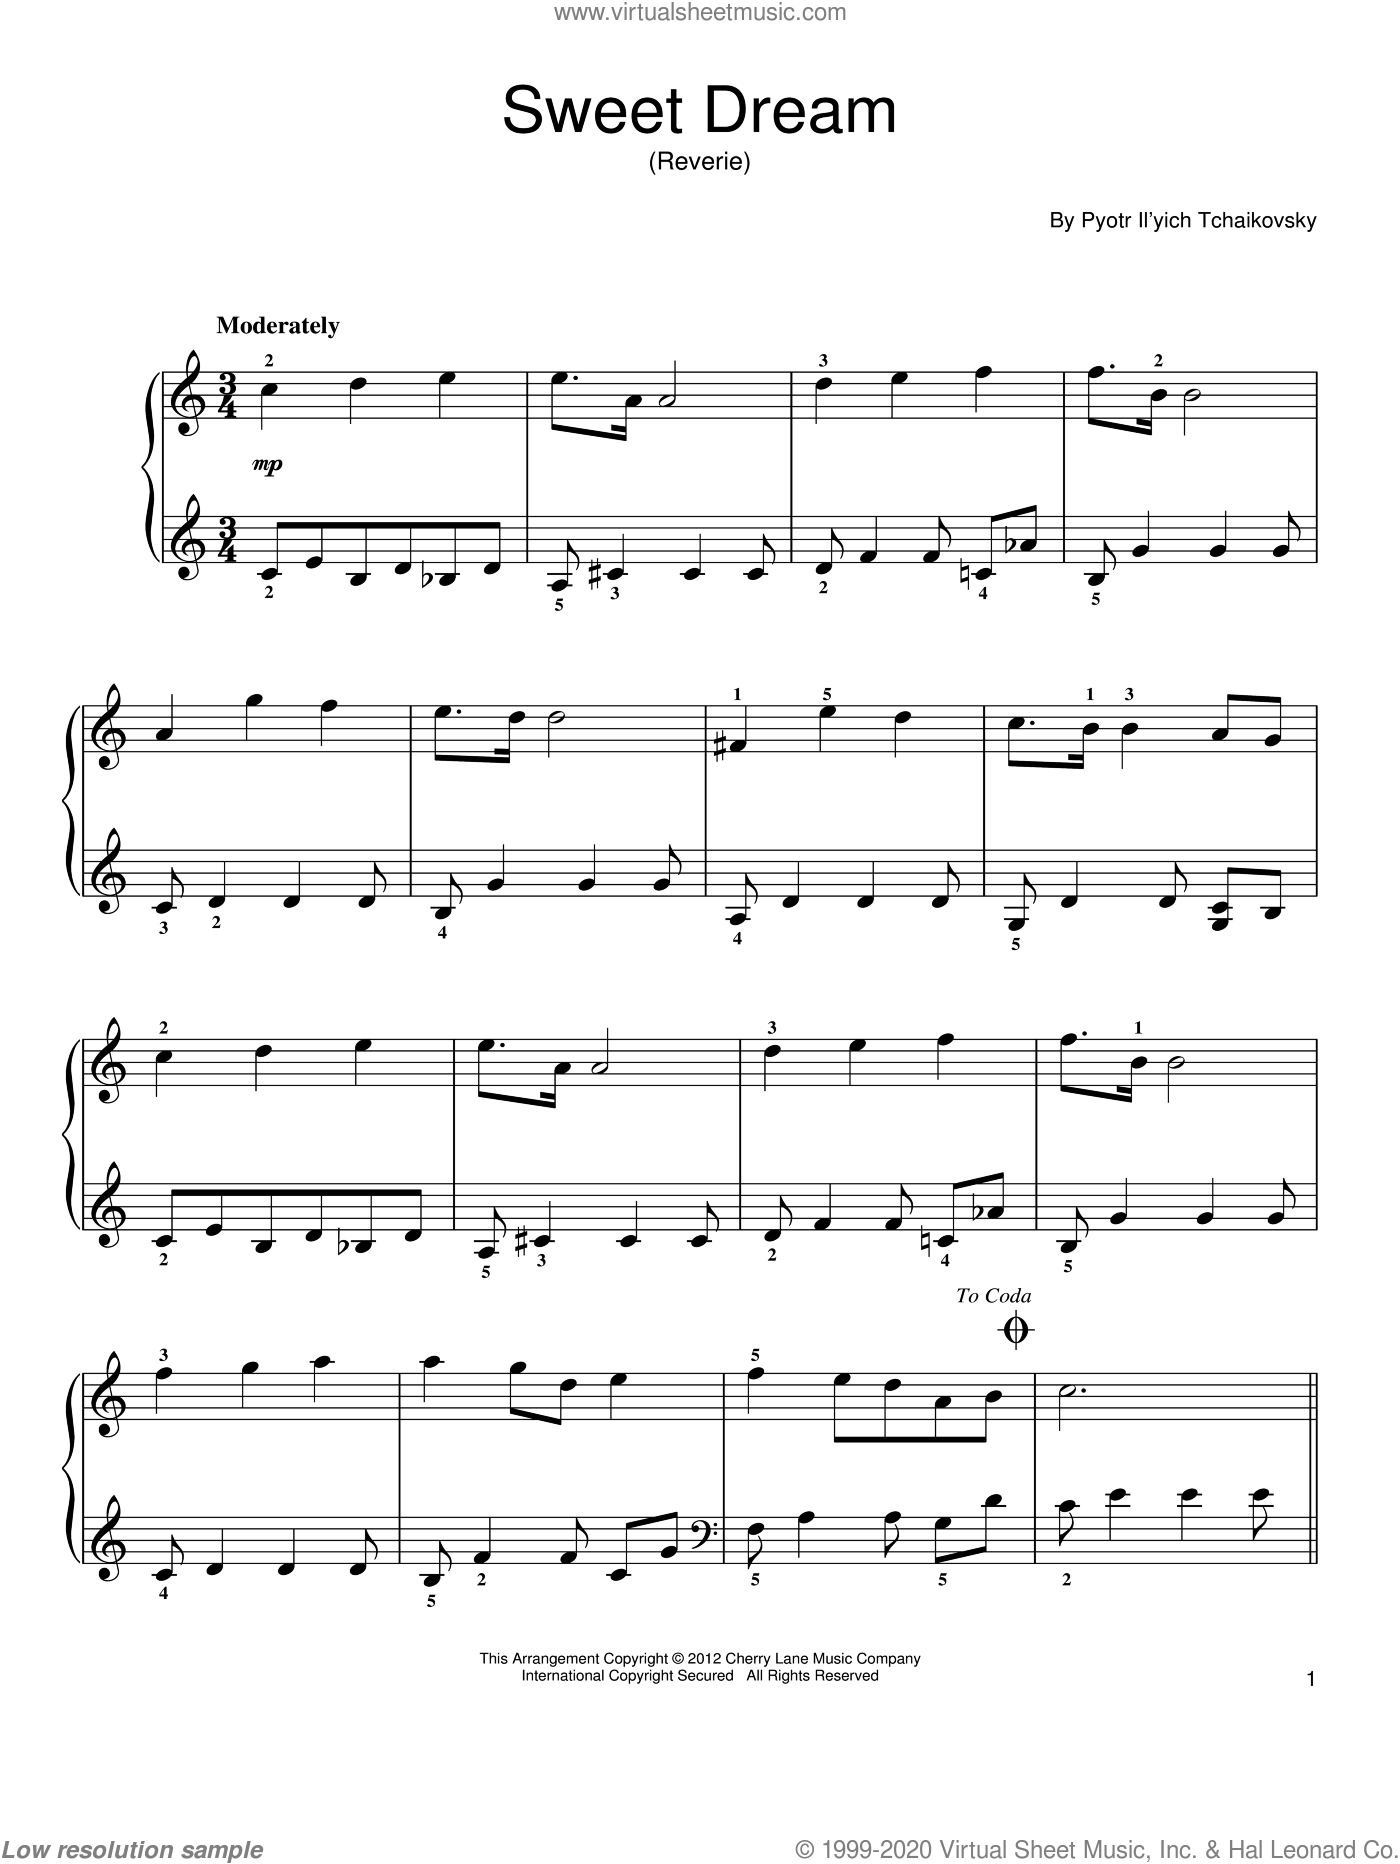 Sweet Dream (Douce Reverie), Op. 39, No. 21 sheet music for piano solo by Pyotr Ilyich Tchaikovsky. Score Image Preview.